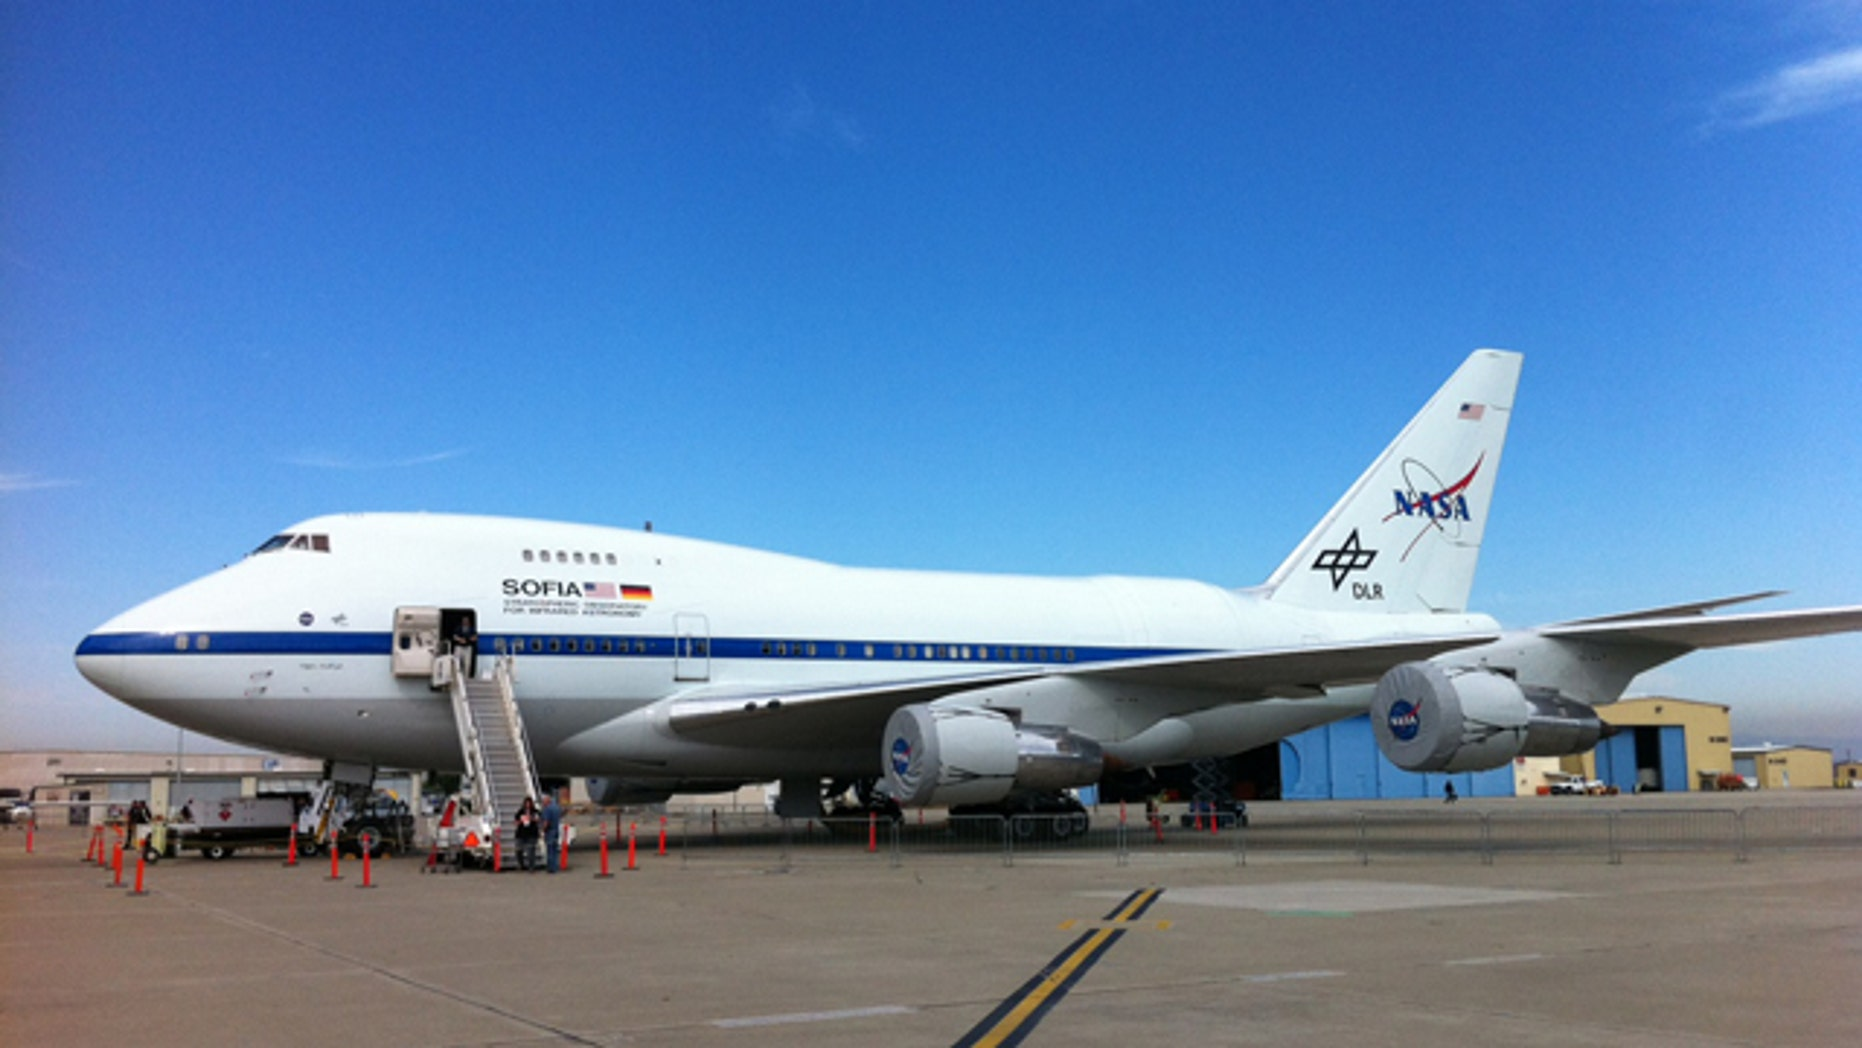 The Stratospheric Observatory for Infrared Astronomy -- a modified Boeing 747 that holds the largest airborne observatory -- sits on the tarmac awaiting its latest flight.